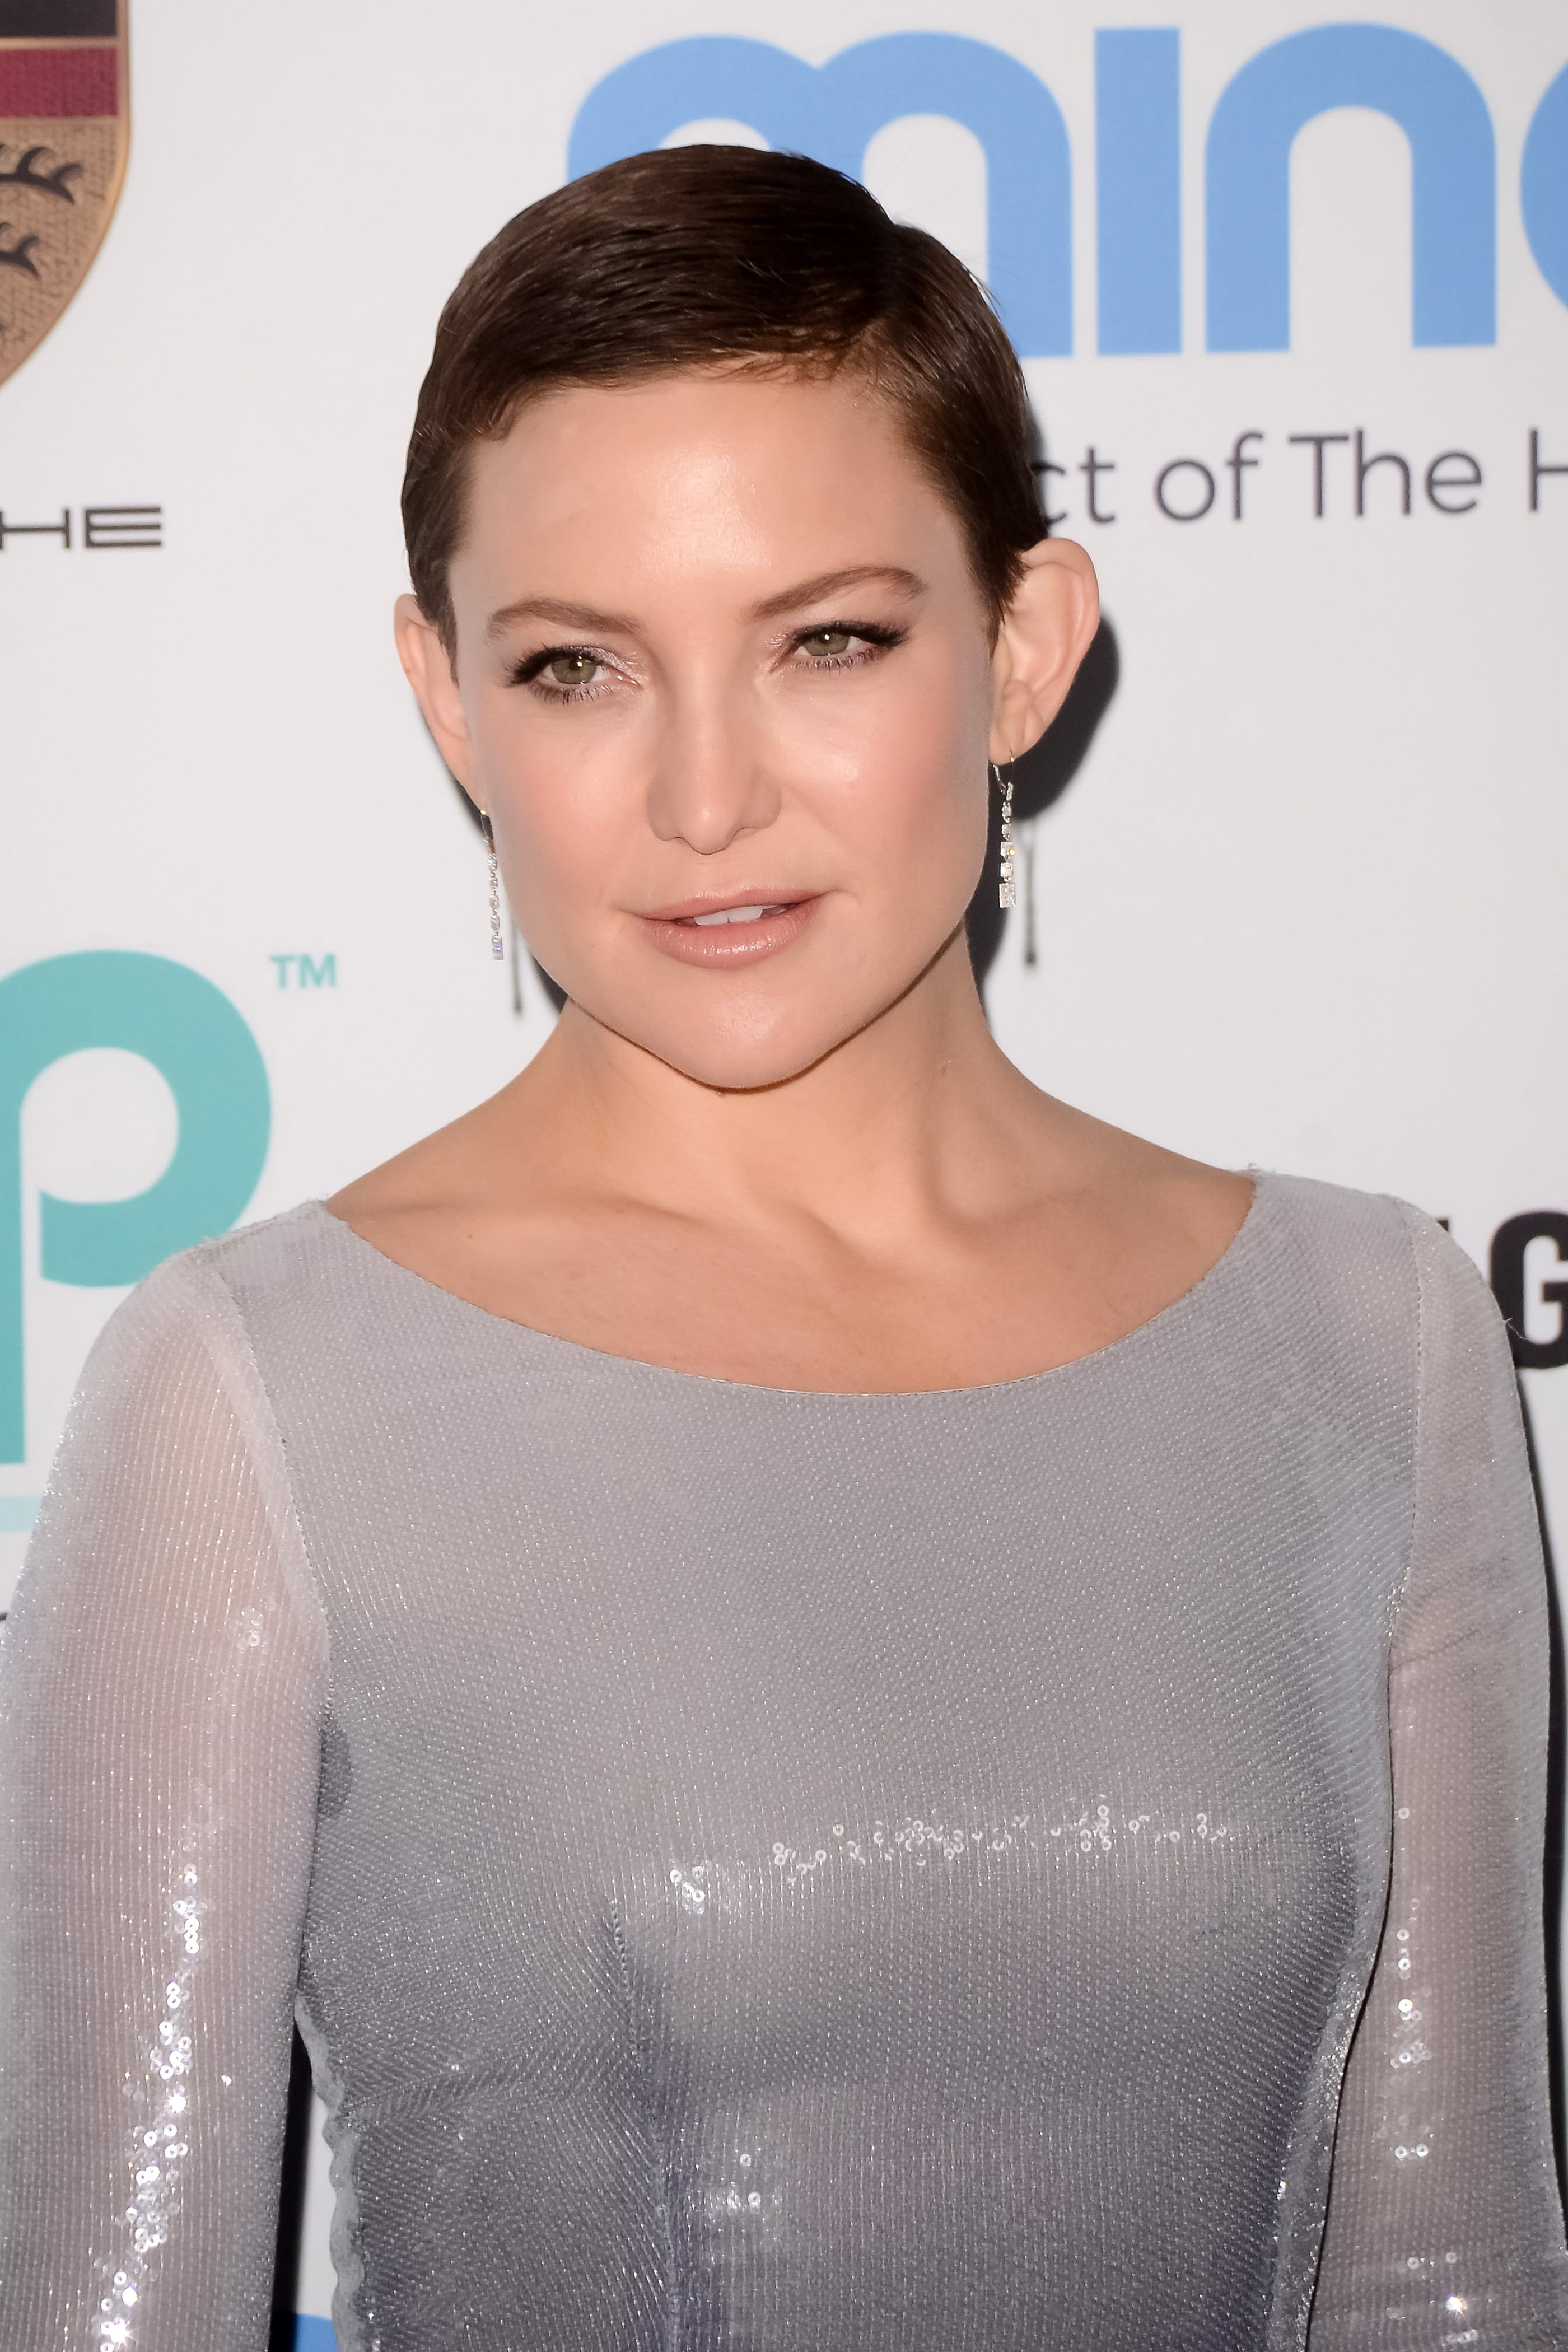 Kate Hudson's Short and Neat Pixie